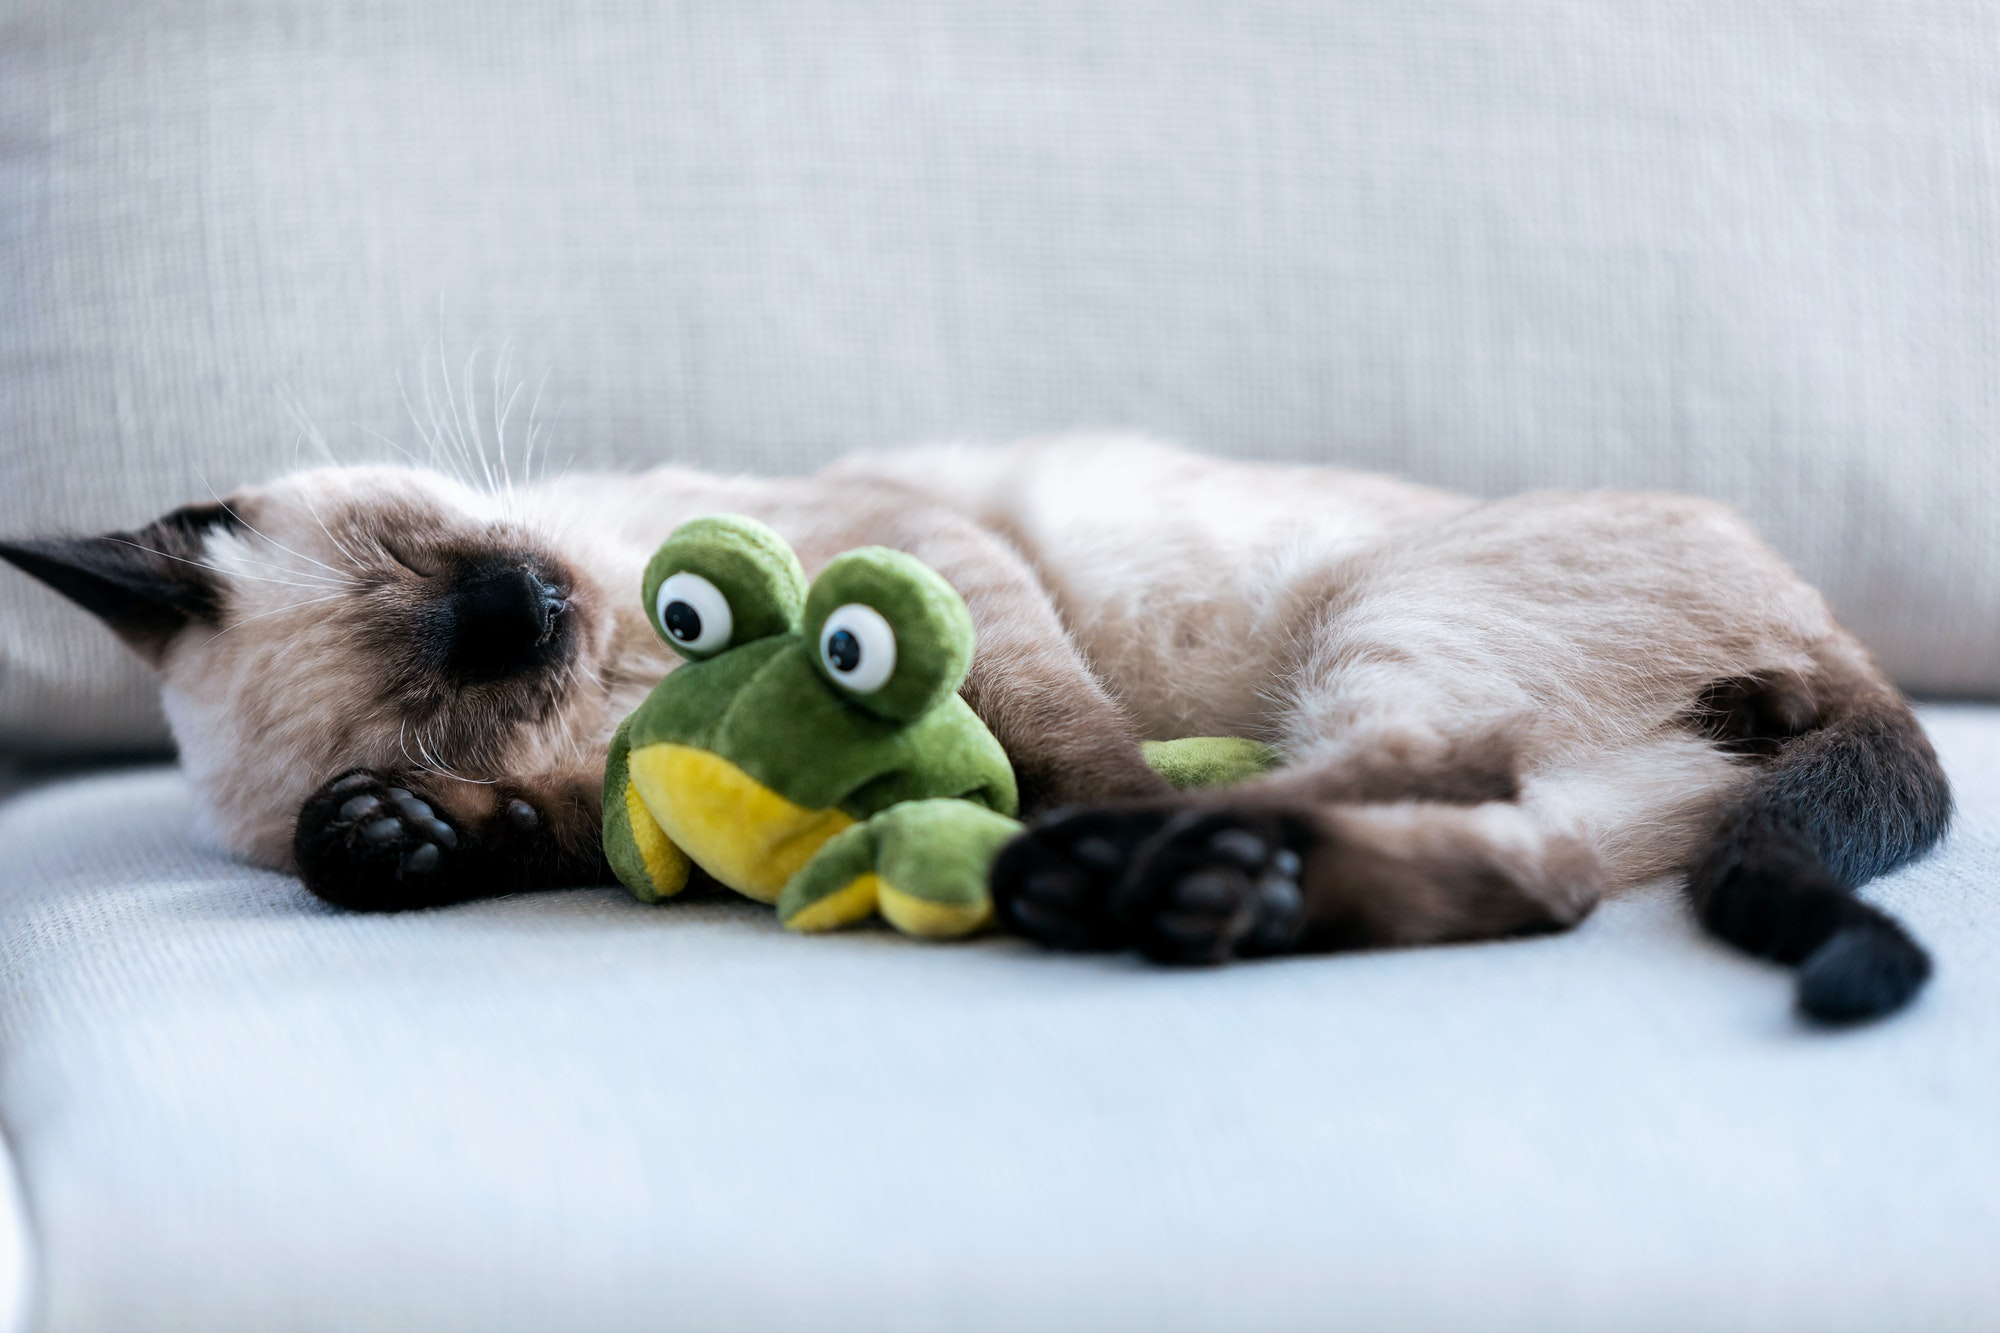 Little cute siamese kitten sleeping on couch while hugging a stuffed frog in living room at home.